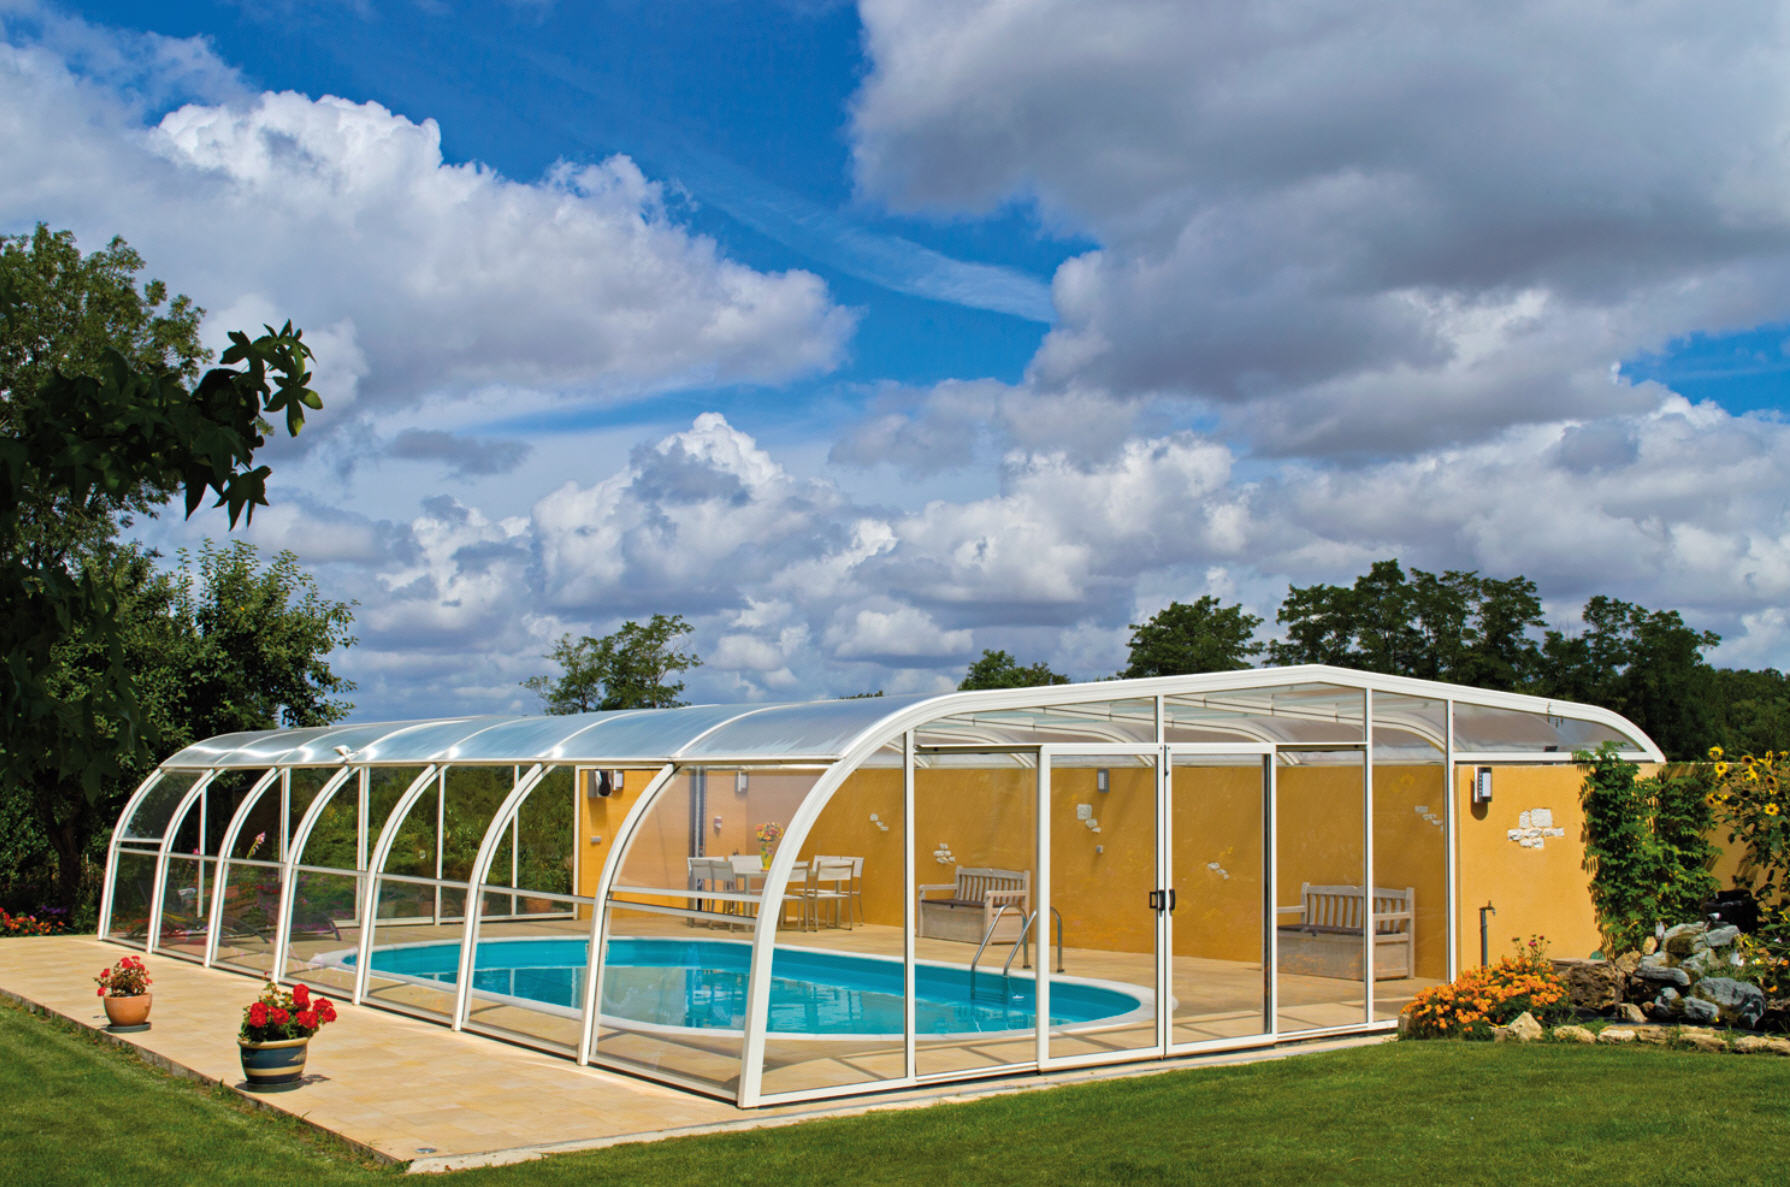 Galaxy-Fixed-Lean-To-Pool-Enclosure-01